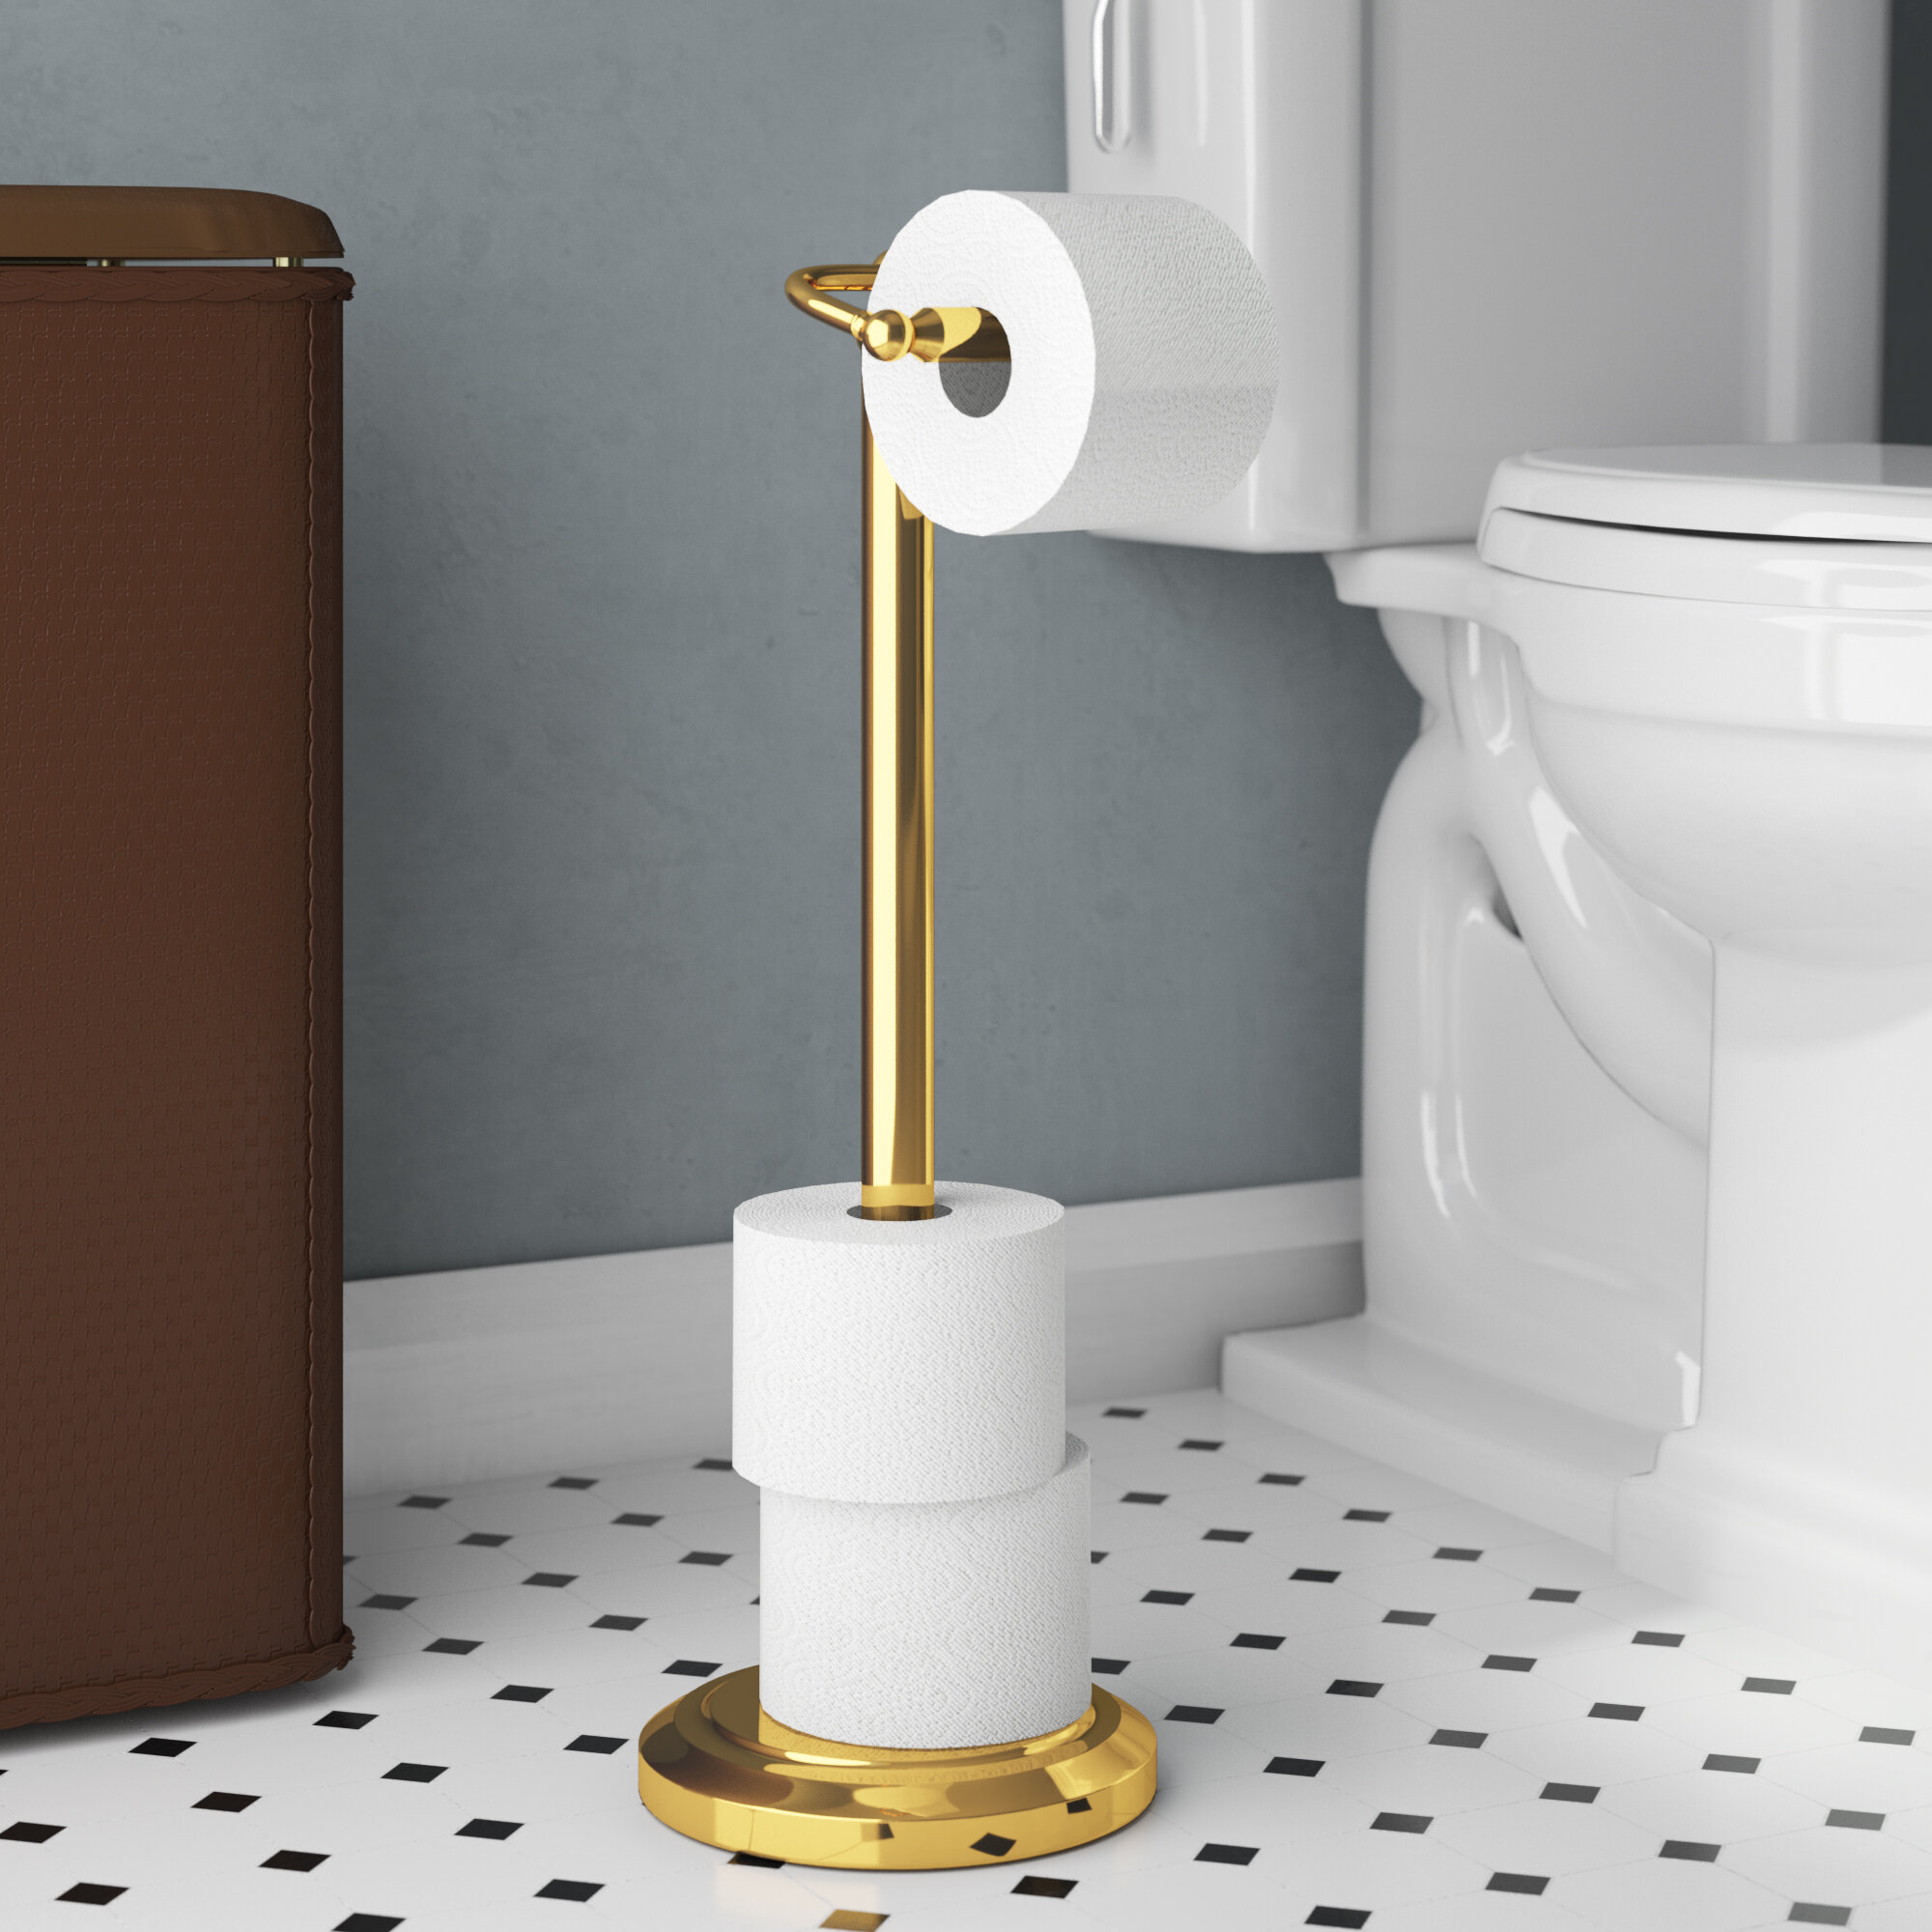 Toilet Paper Holders Up To 55 Off Through 02 16 Wayfair